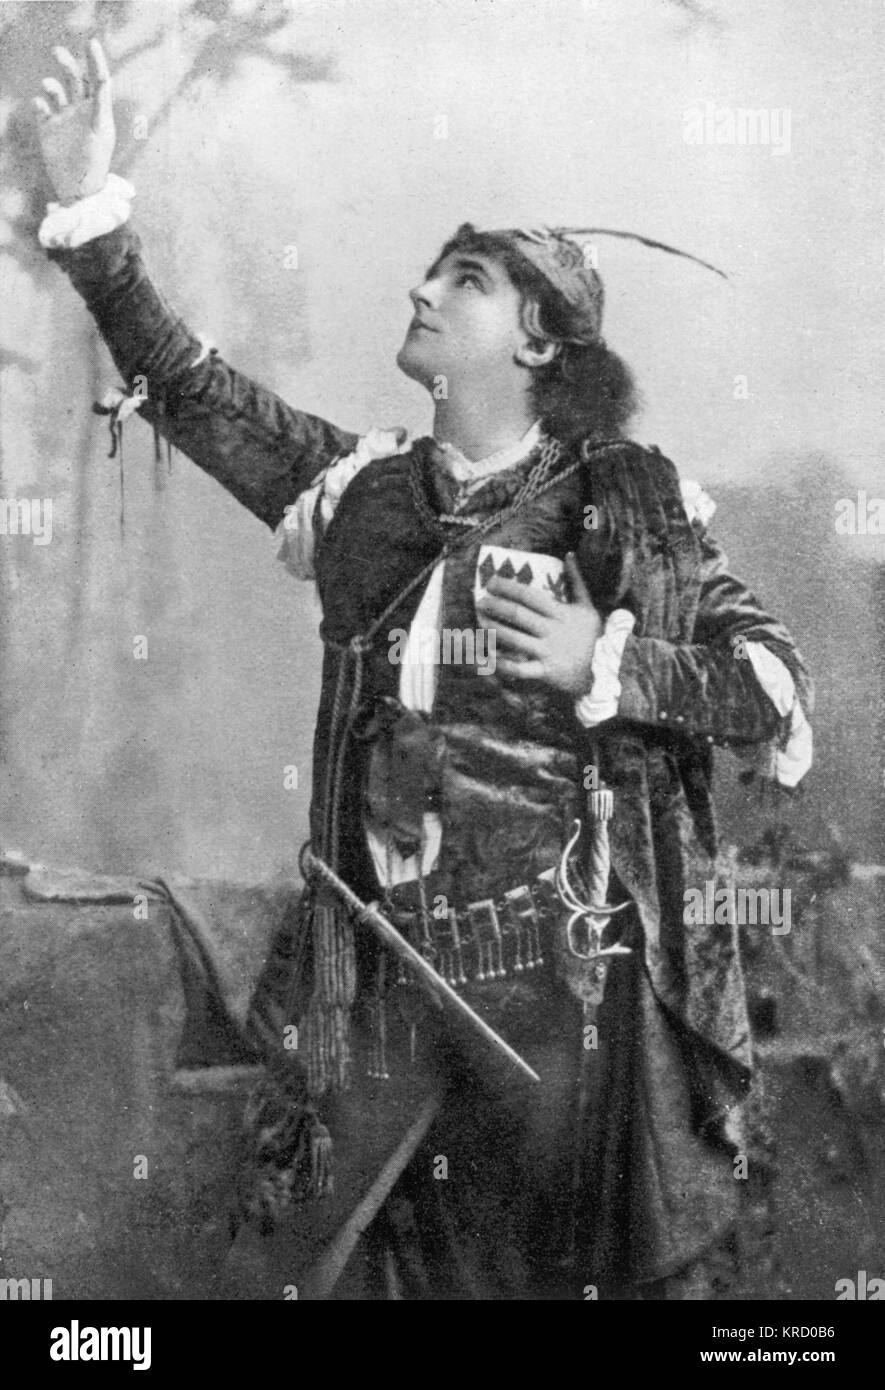 HAROLD KYRLE BELLEW English actor, born in  Lancashire, in the role of  Romeo in Shakespeare's Romeo  and Juliet. Stock Photo